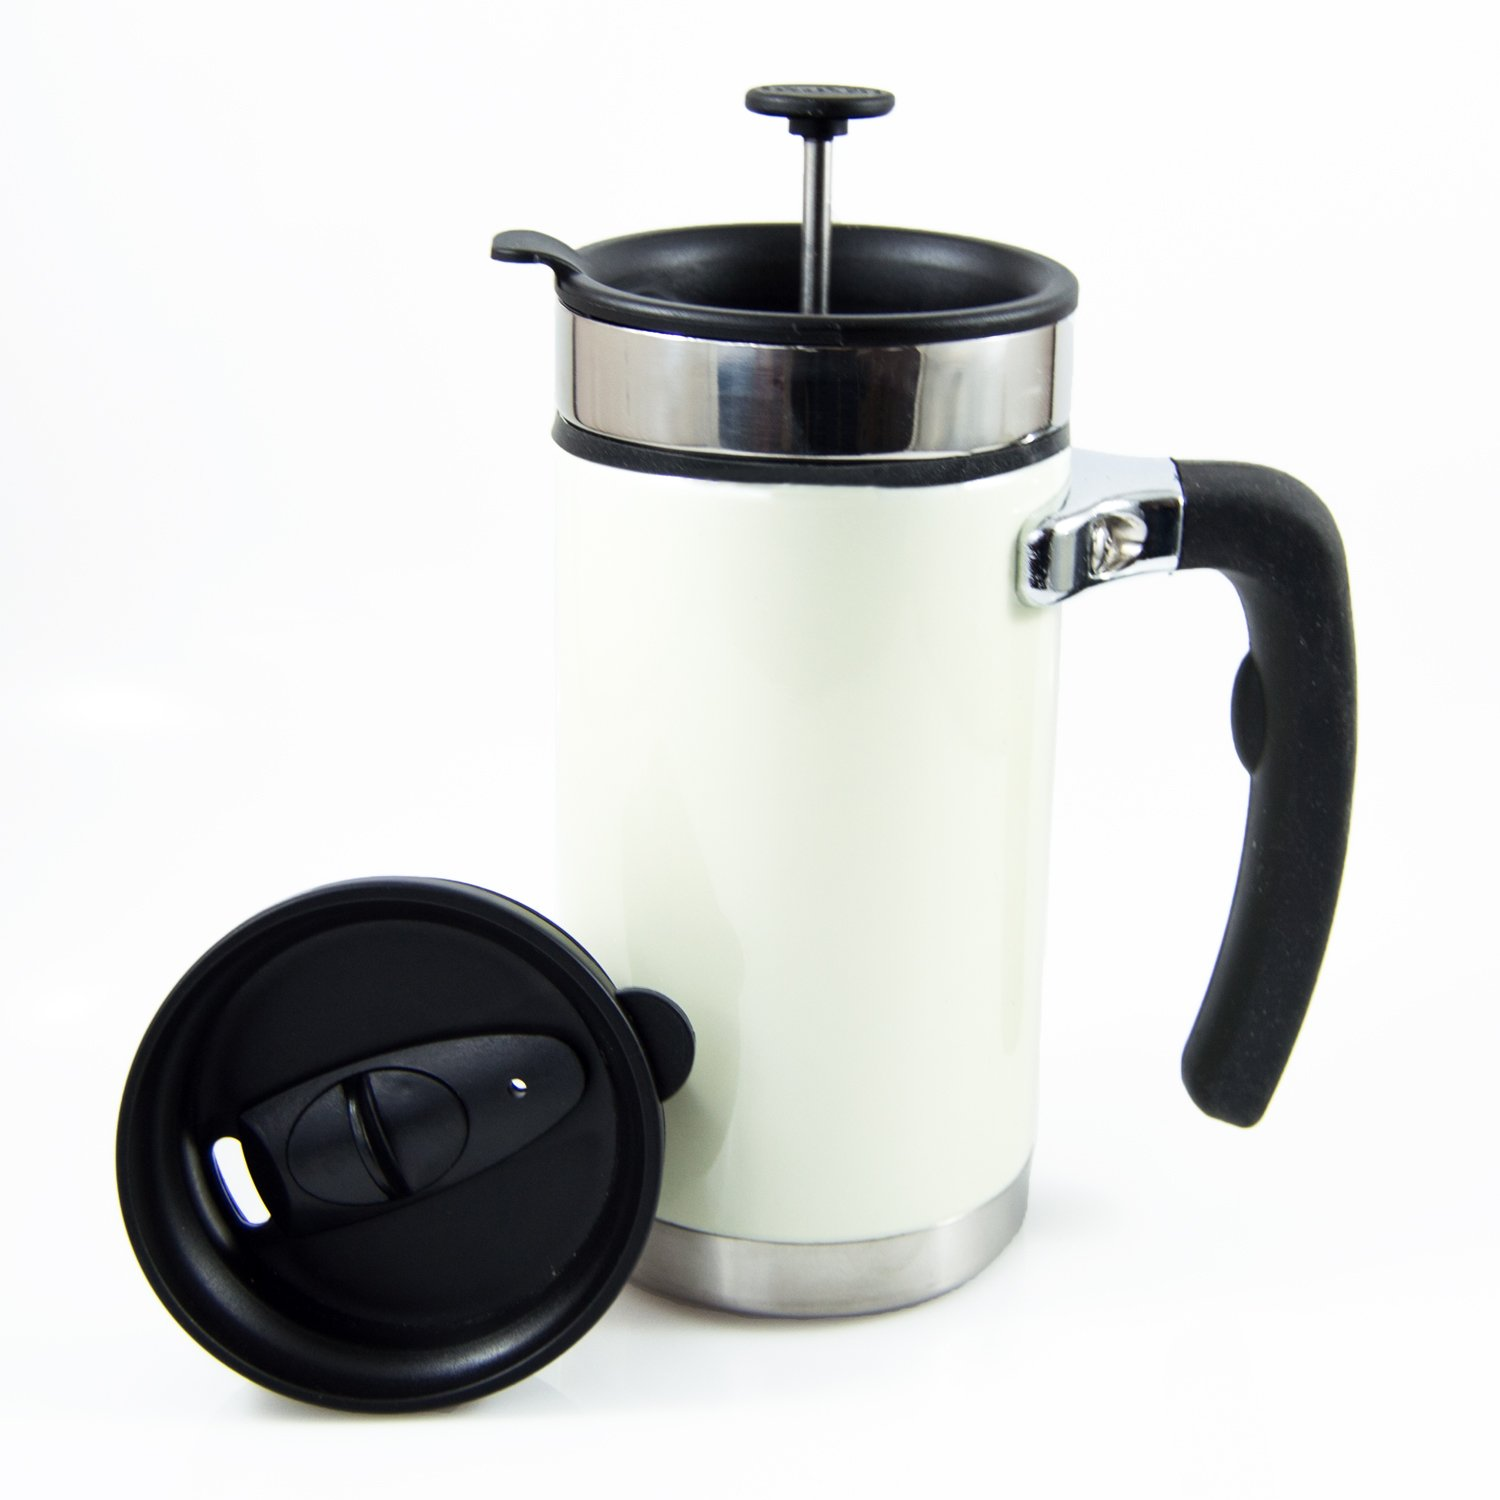 Desk Press Coffee Travel Mug - French Press with Brü-Stop Technology - 2 Spill Proof Lids - 20oz - Pearl